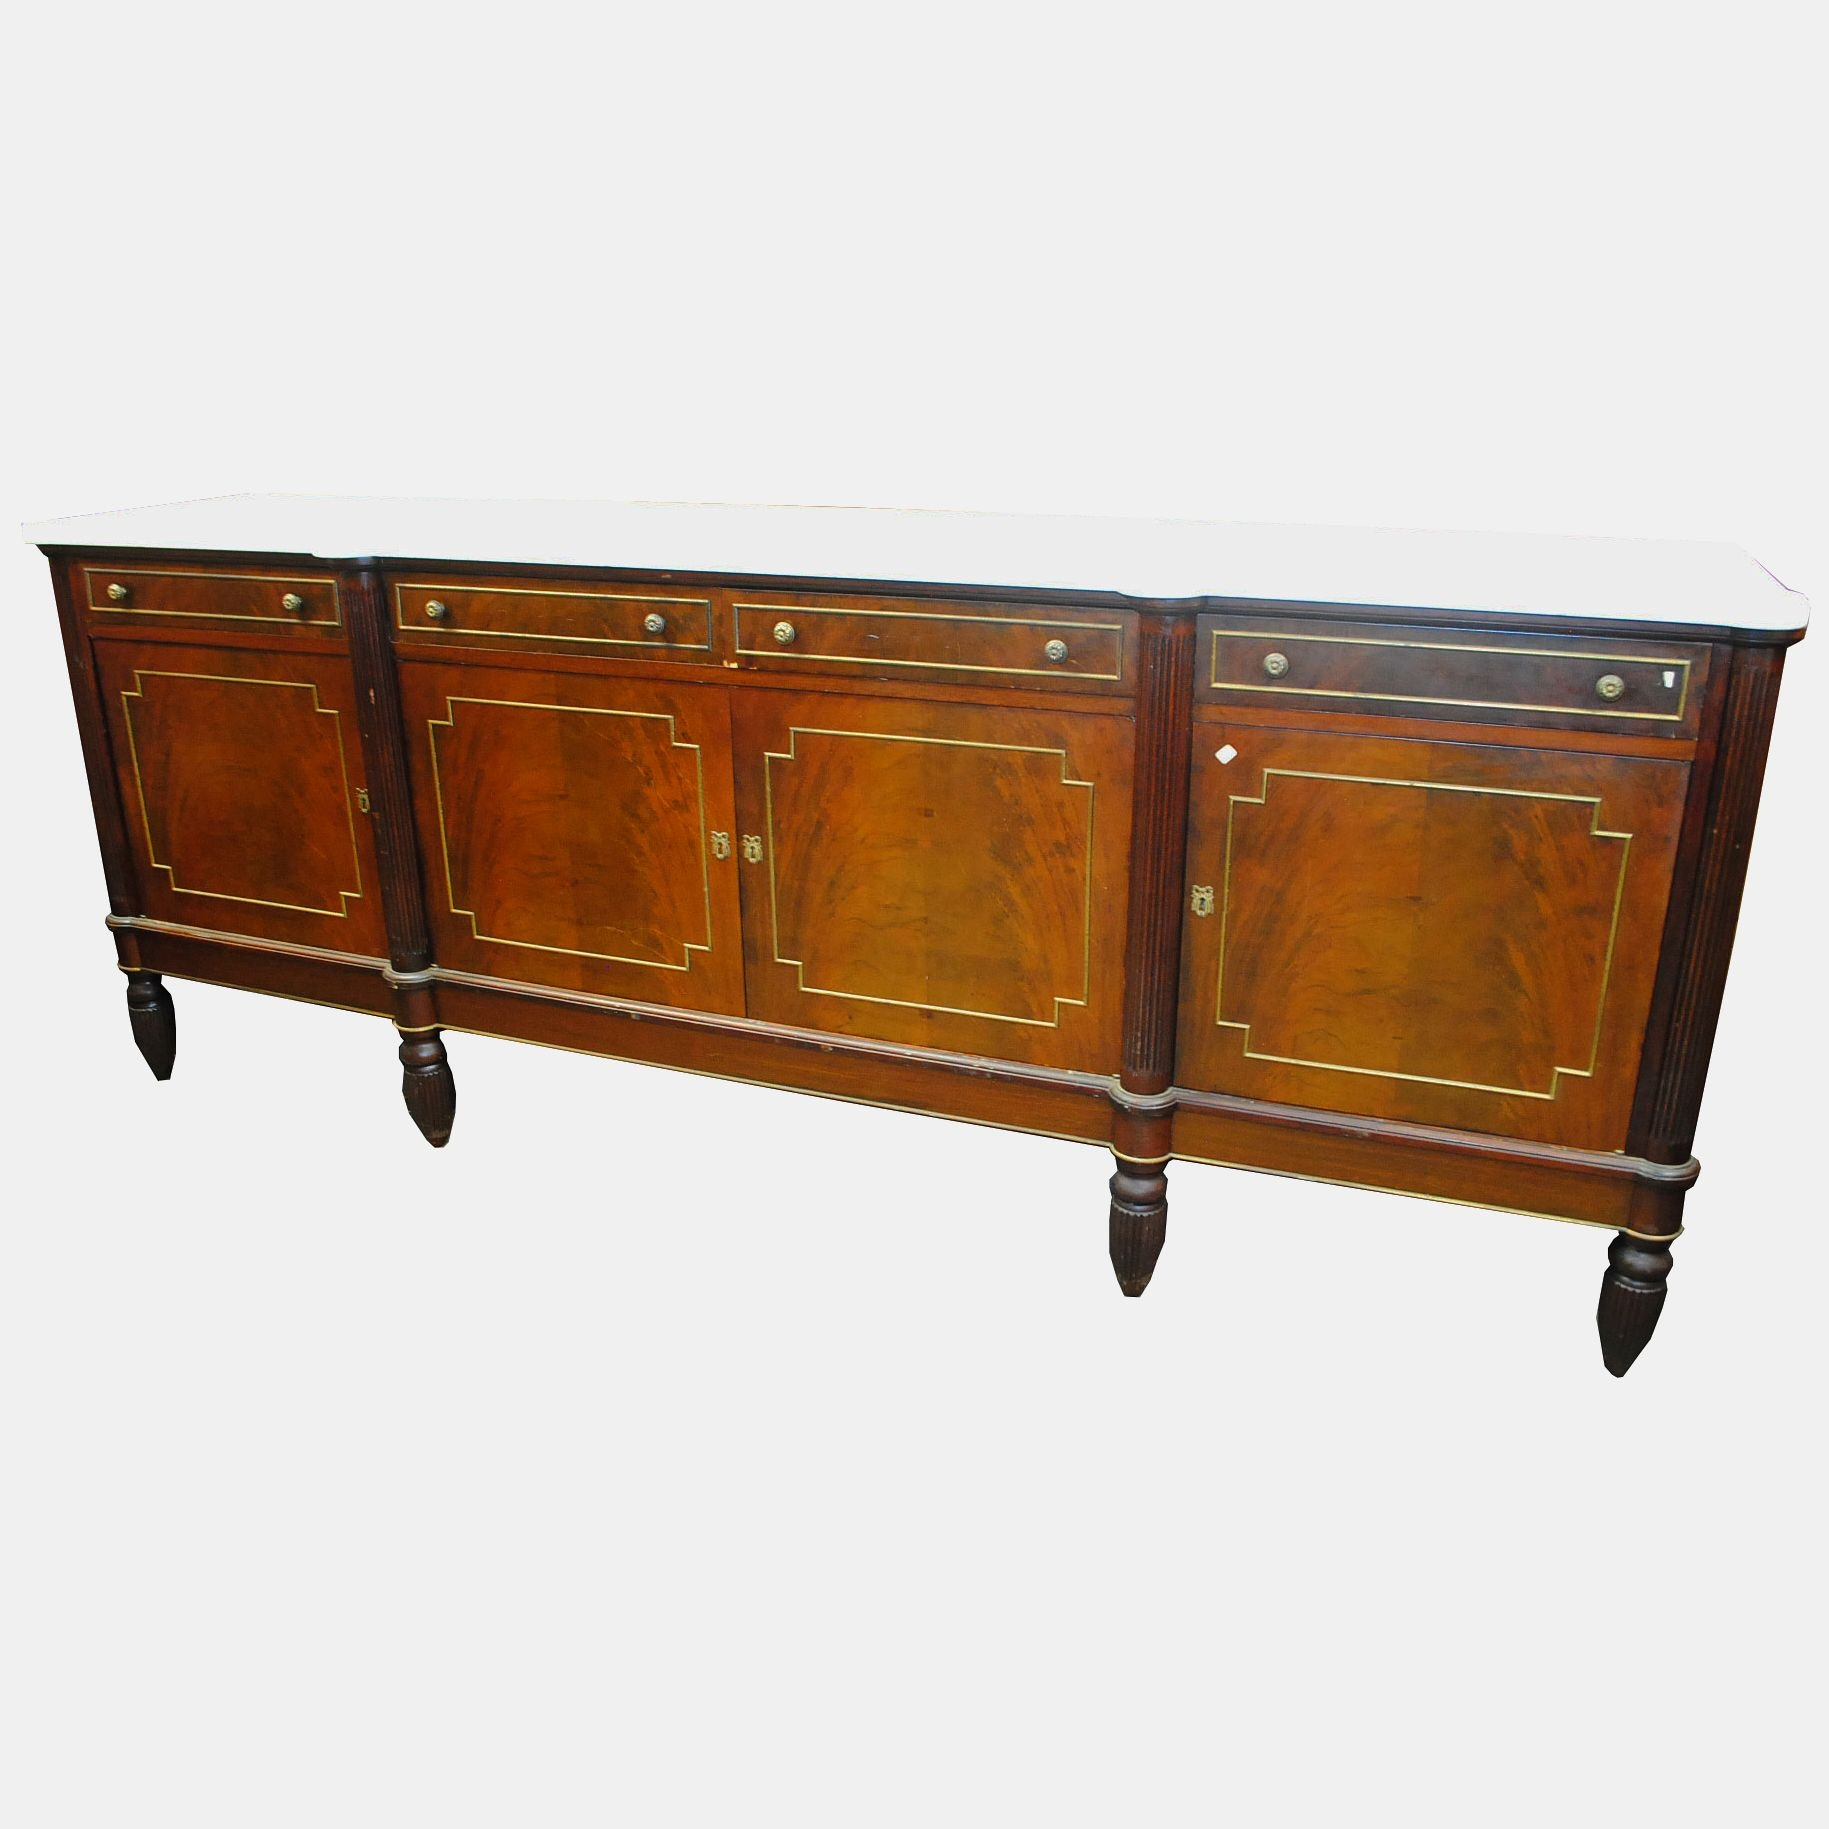 Vintage French Neoclassical Style Mahogany Marble Top Sideboard